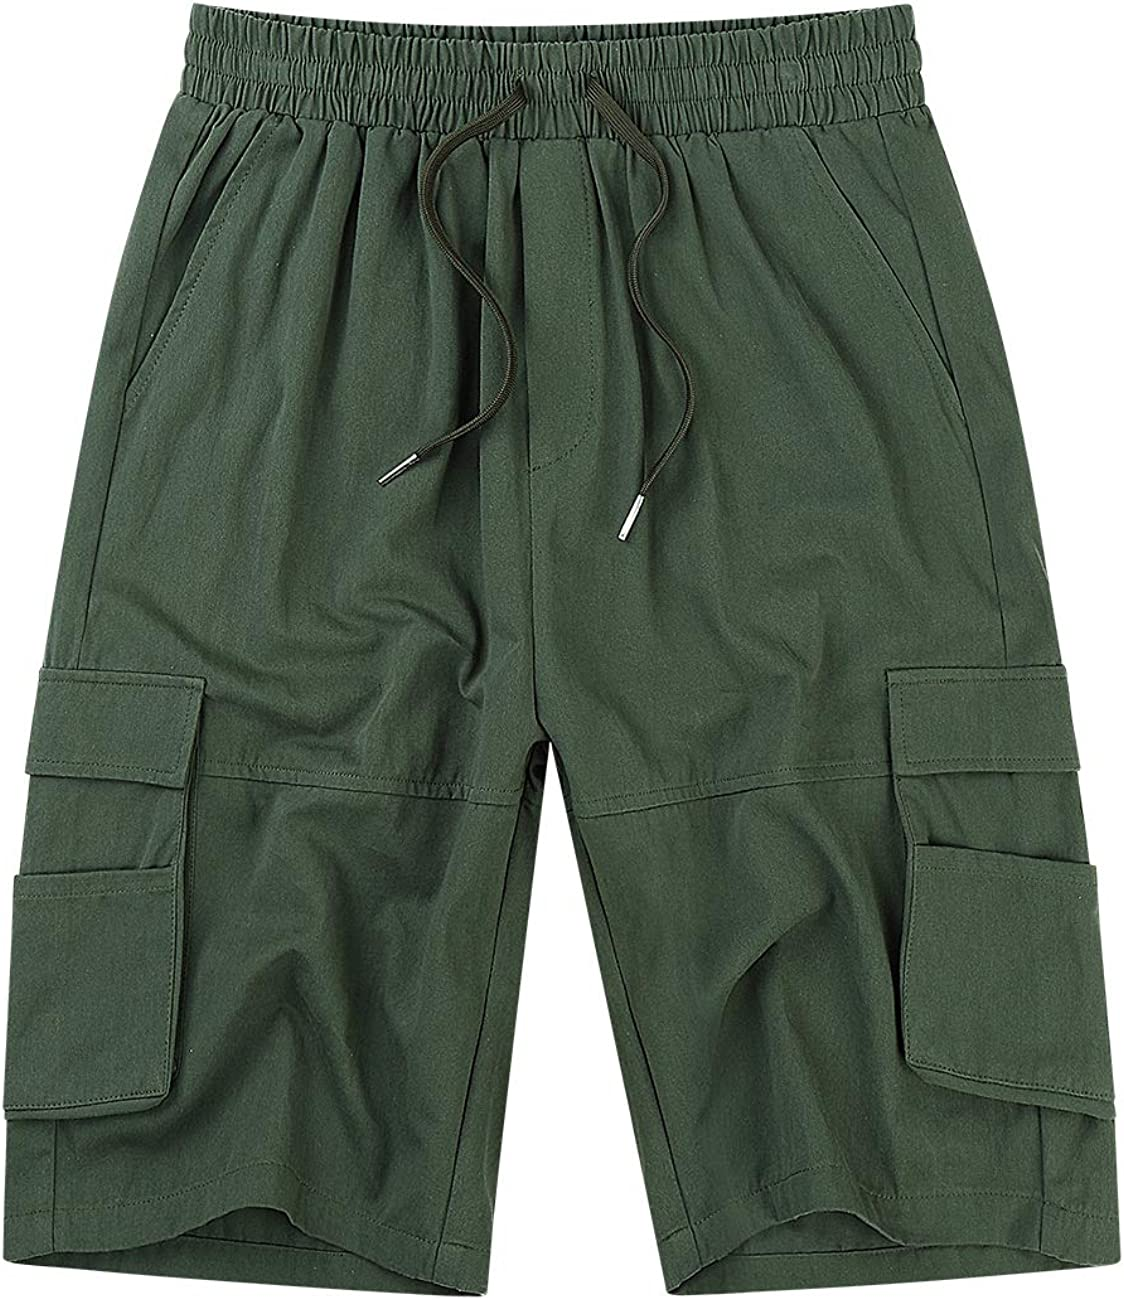 KUULEE Men's Cargo Shorts Elastic Waist Drawstring Relaxed Fit Multi-Pockets Outdoor Casual Shorts